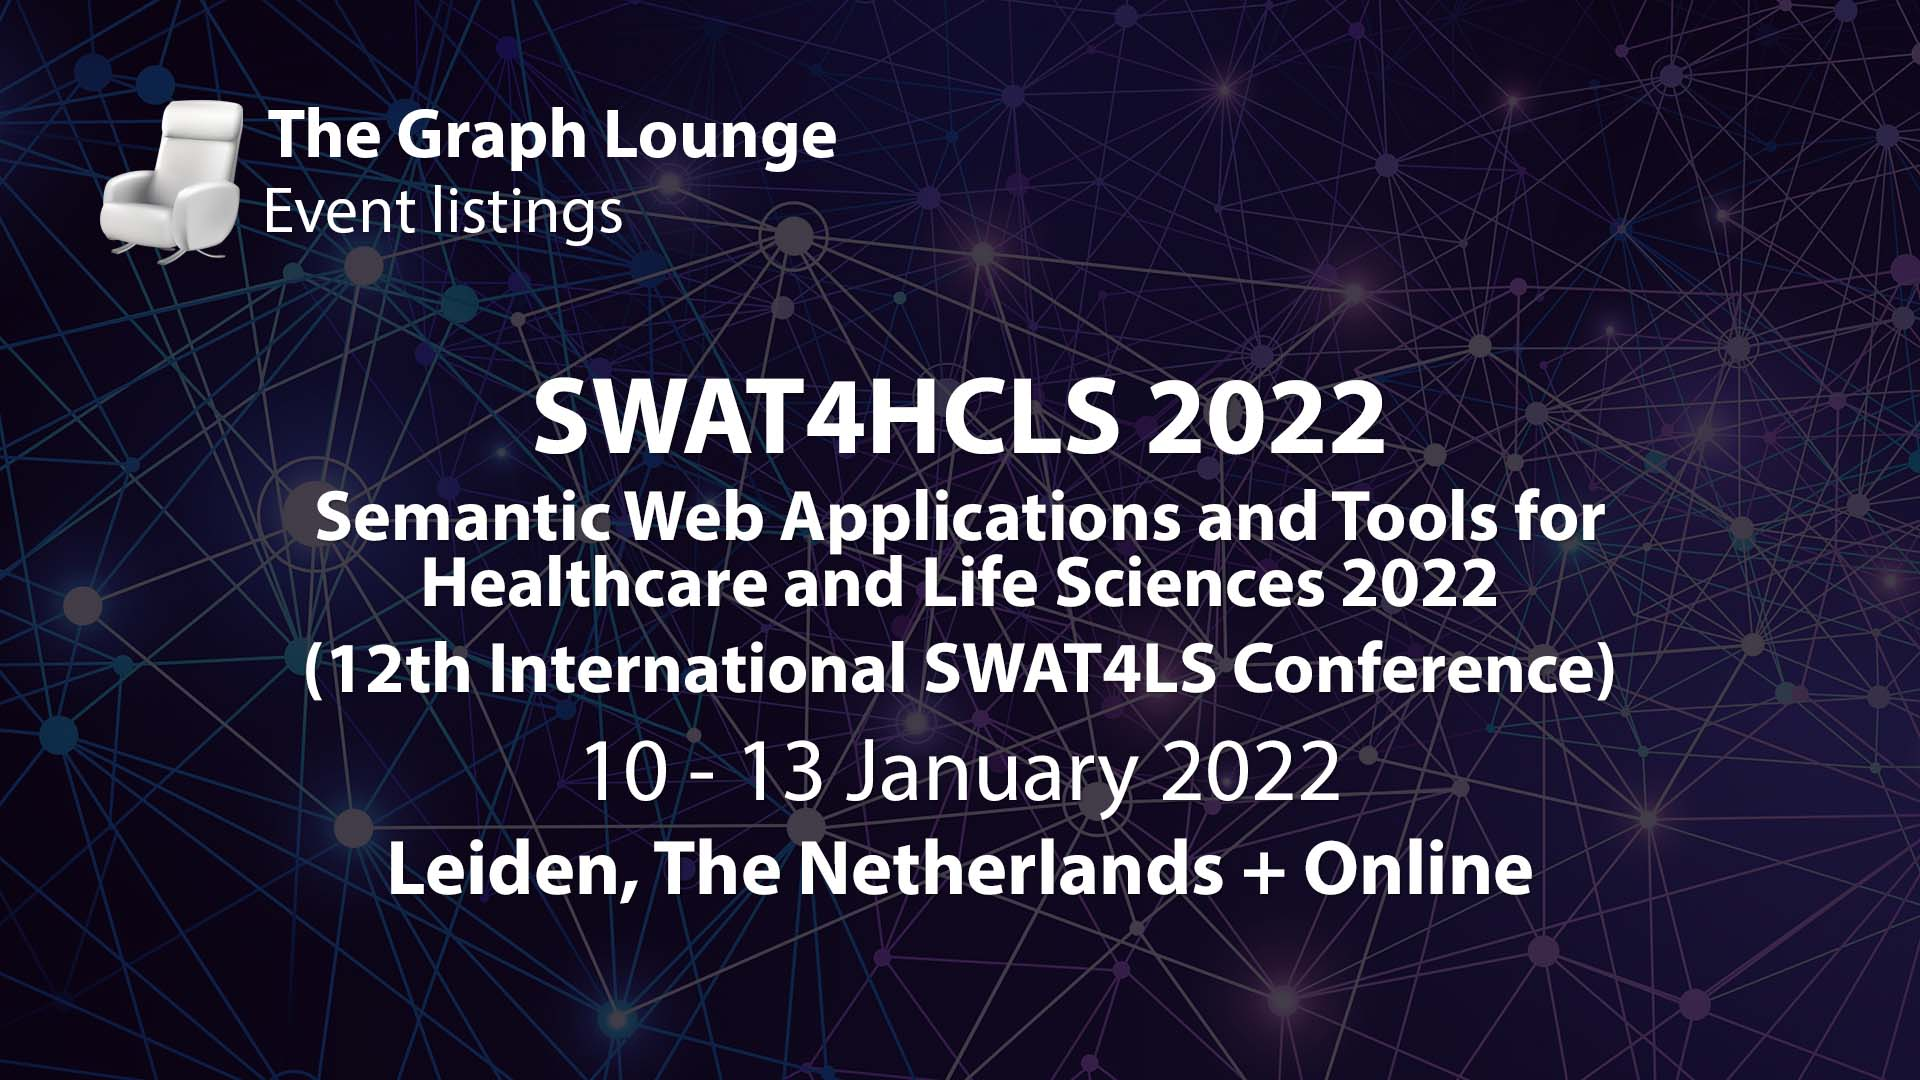 SWAT4HCLS 2022 (Semantic Web Applications and Tools for Healthcare and Life Sciences 2022) - 12th International SWAT4LS Conference